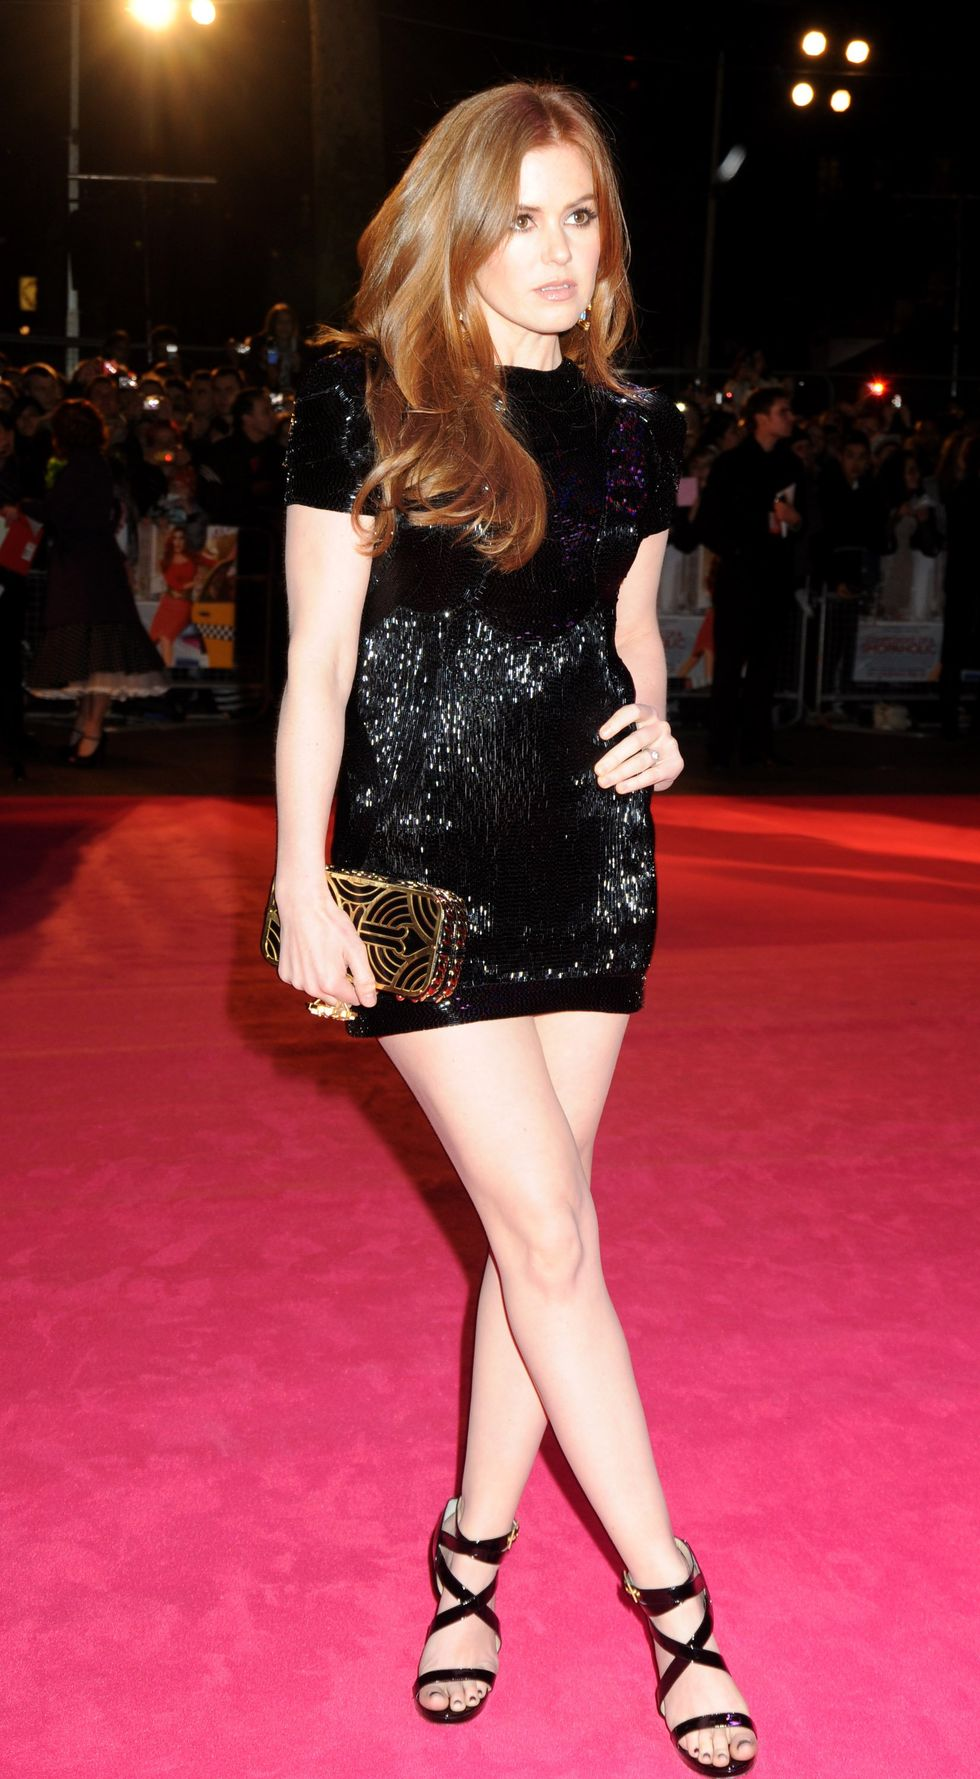 isla-fisher-confessions-of-a-shopaholic-premiere-in-london-01